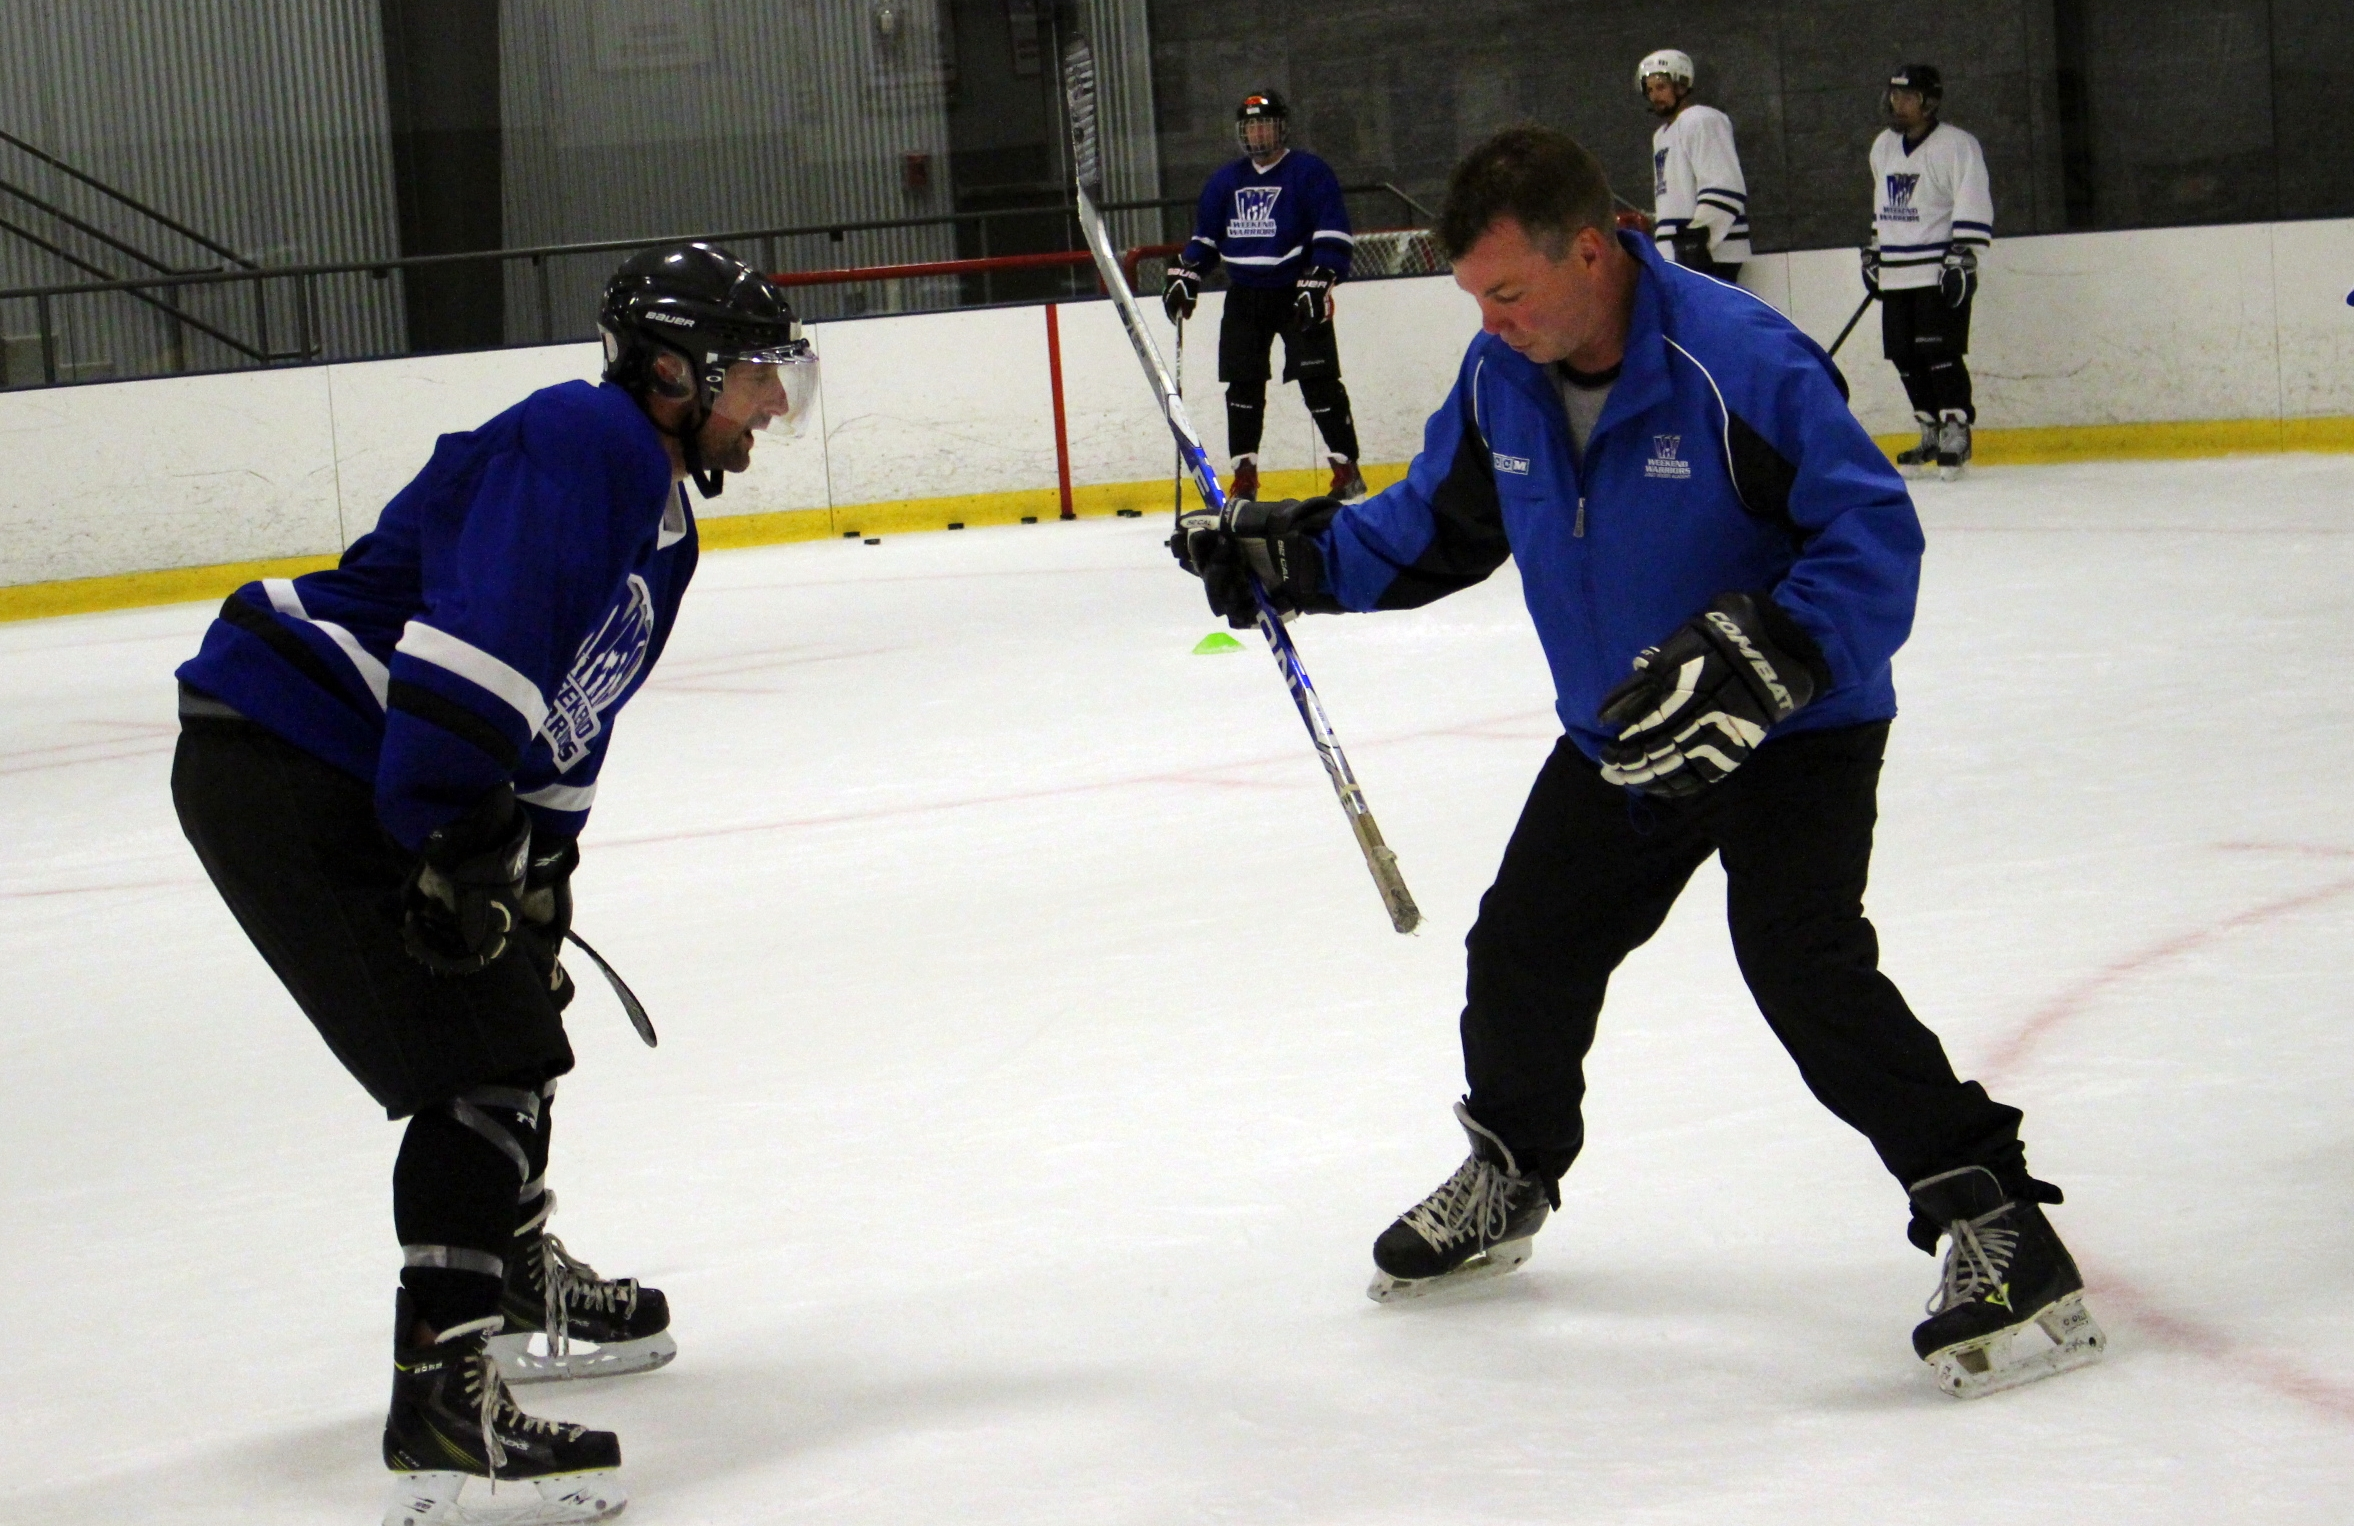 Coach Kevin helps player with wrist shot